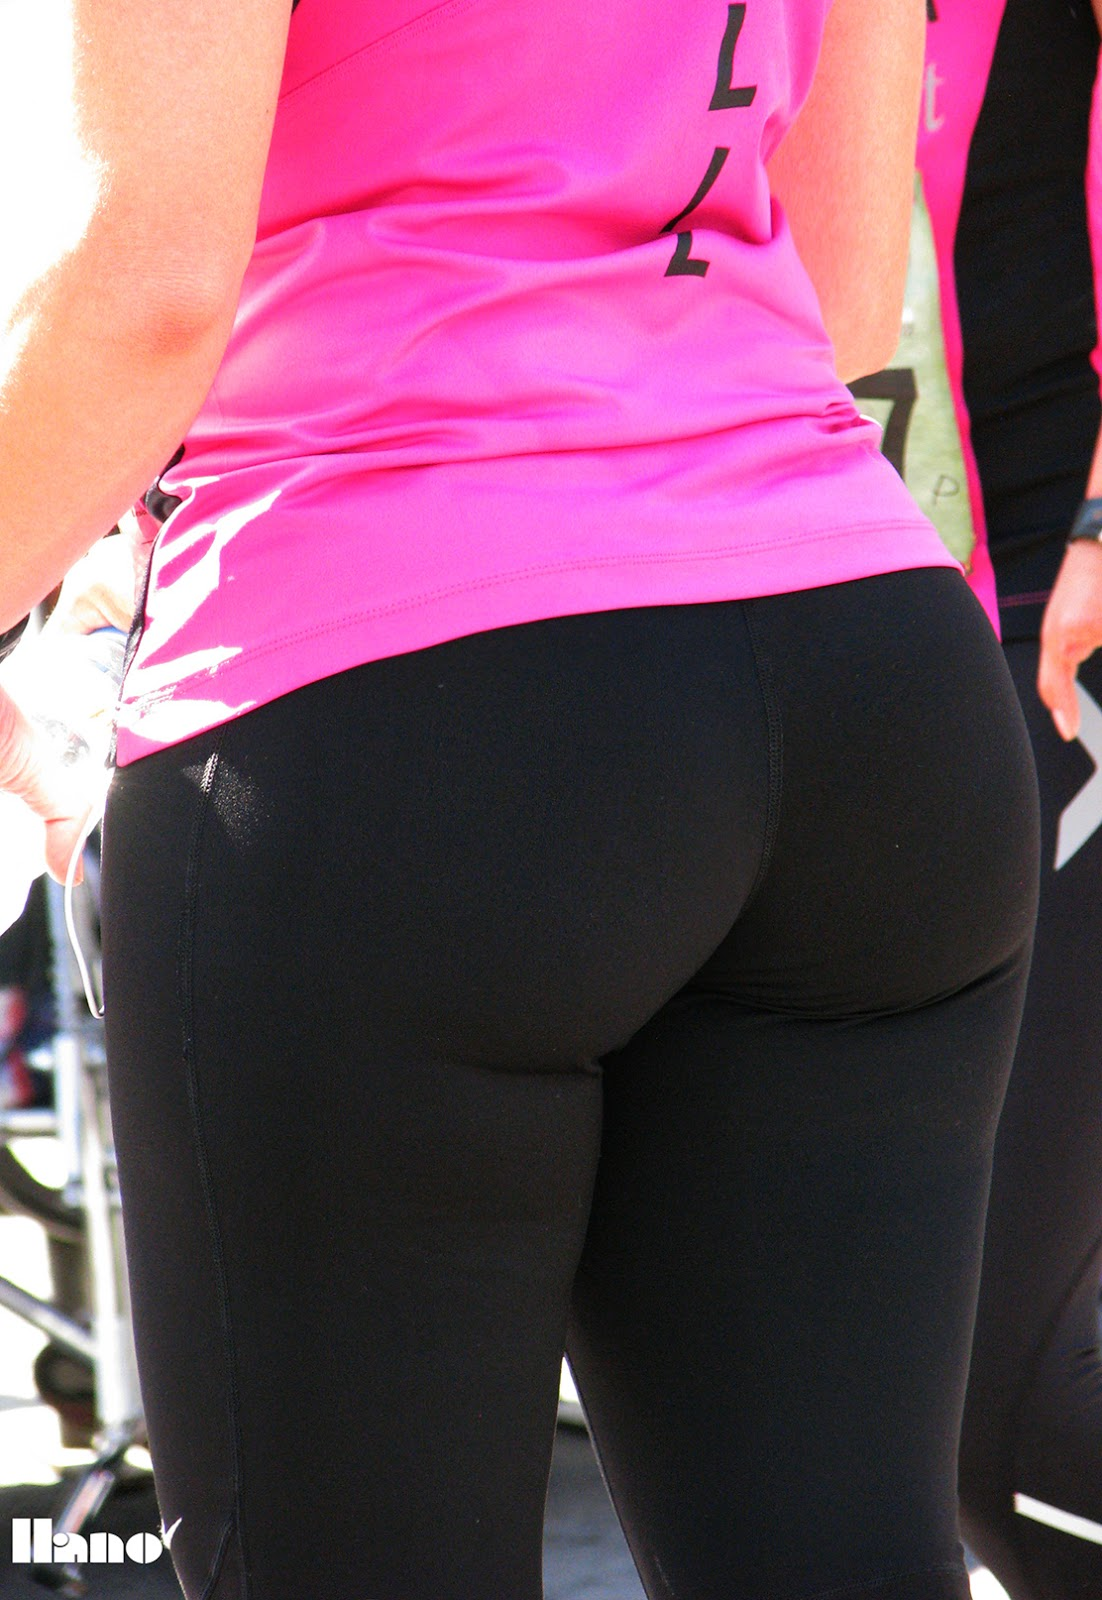 Girls In Tight Yoga Pants